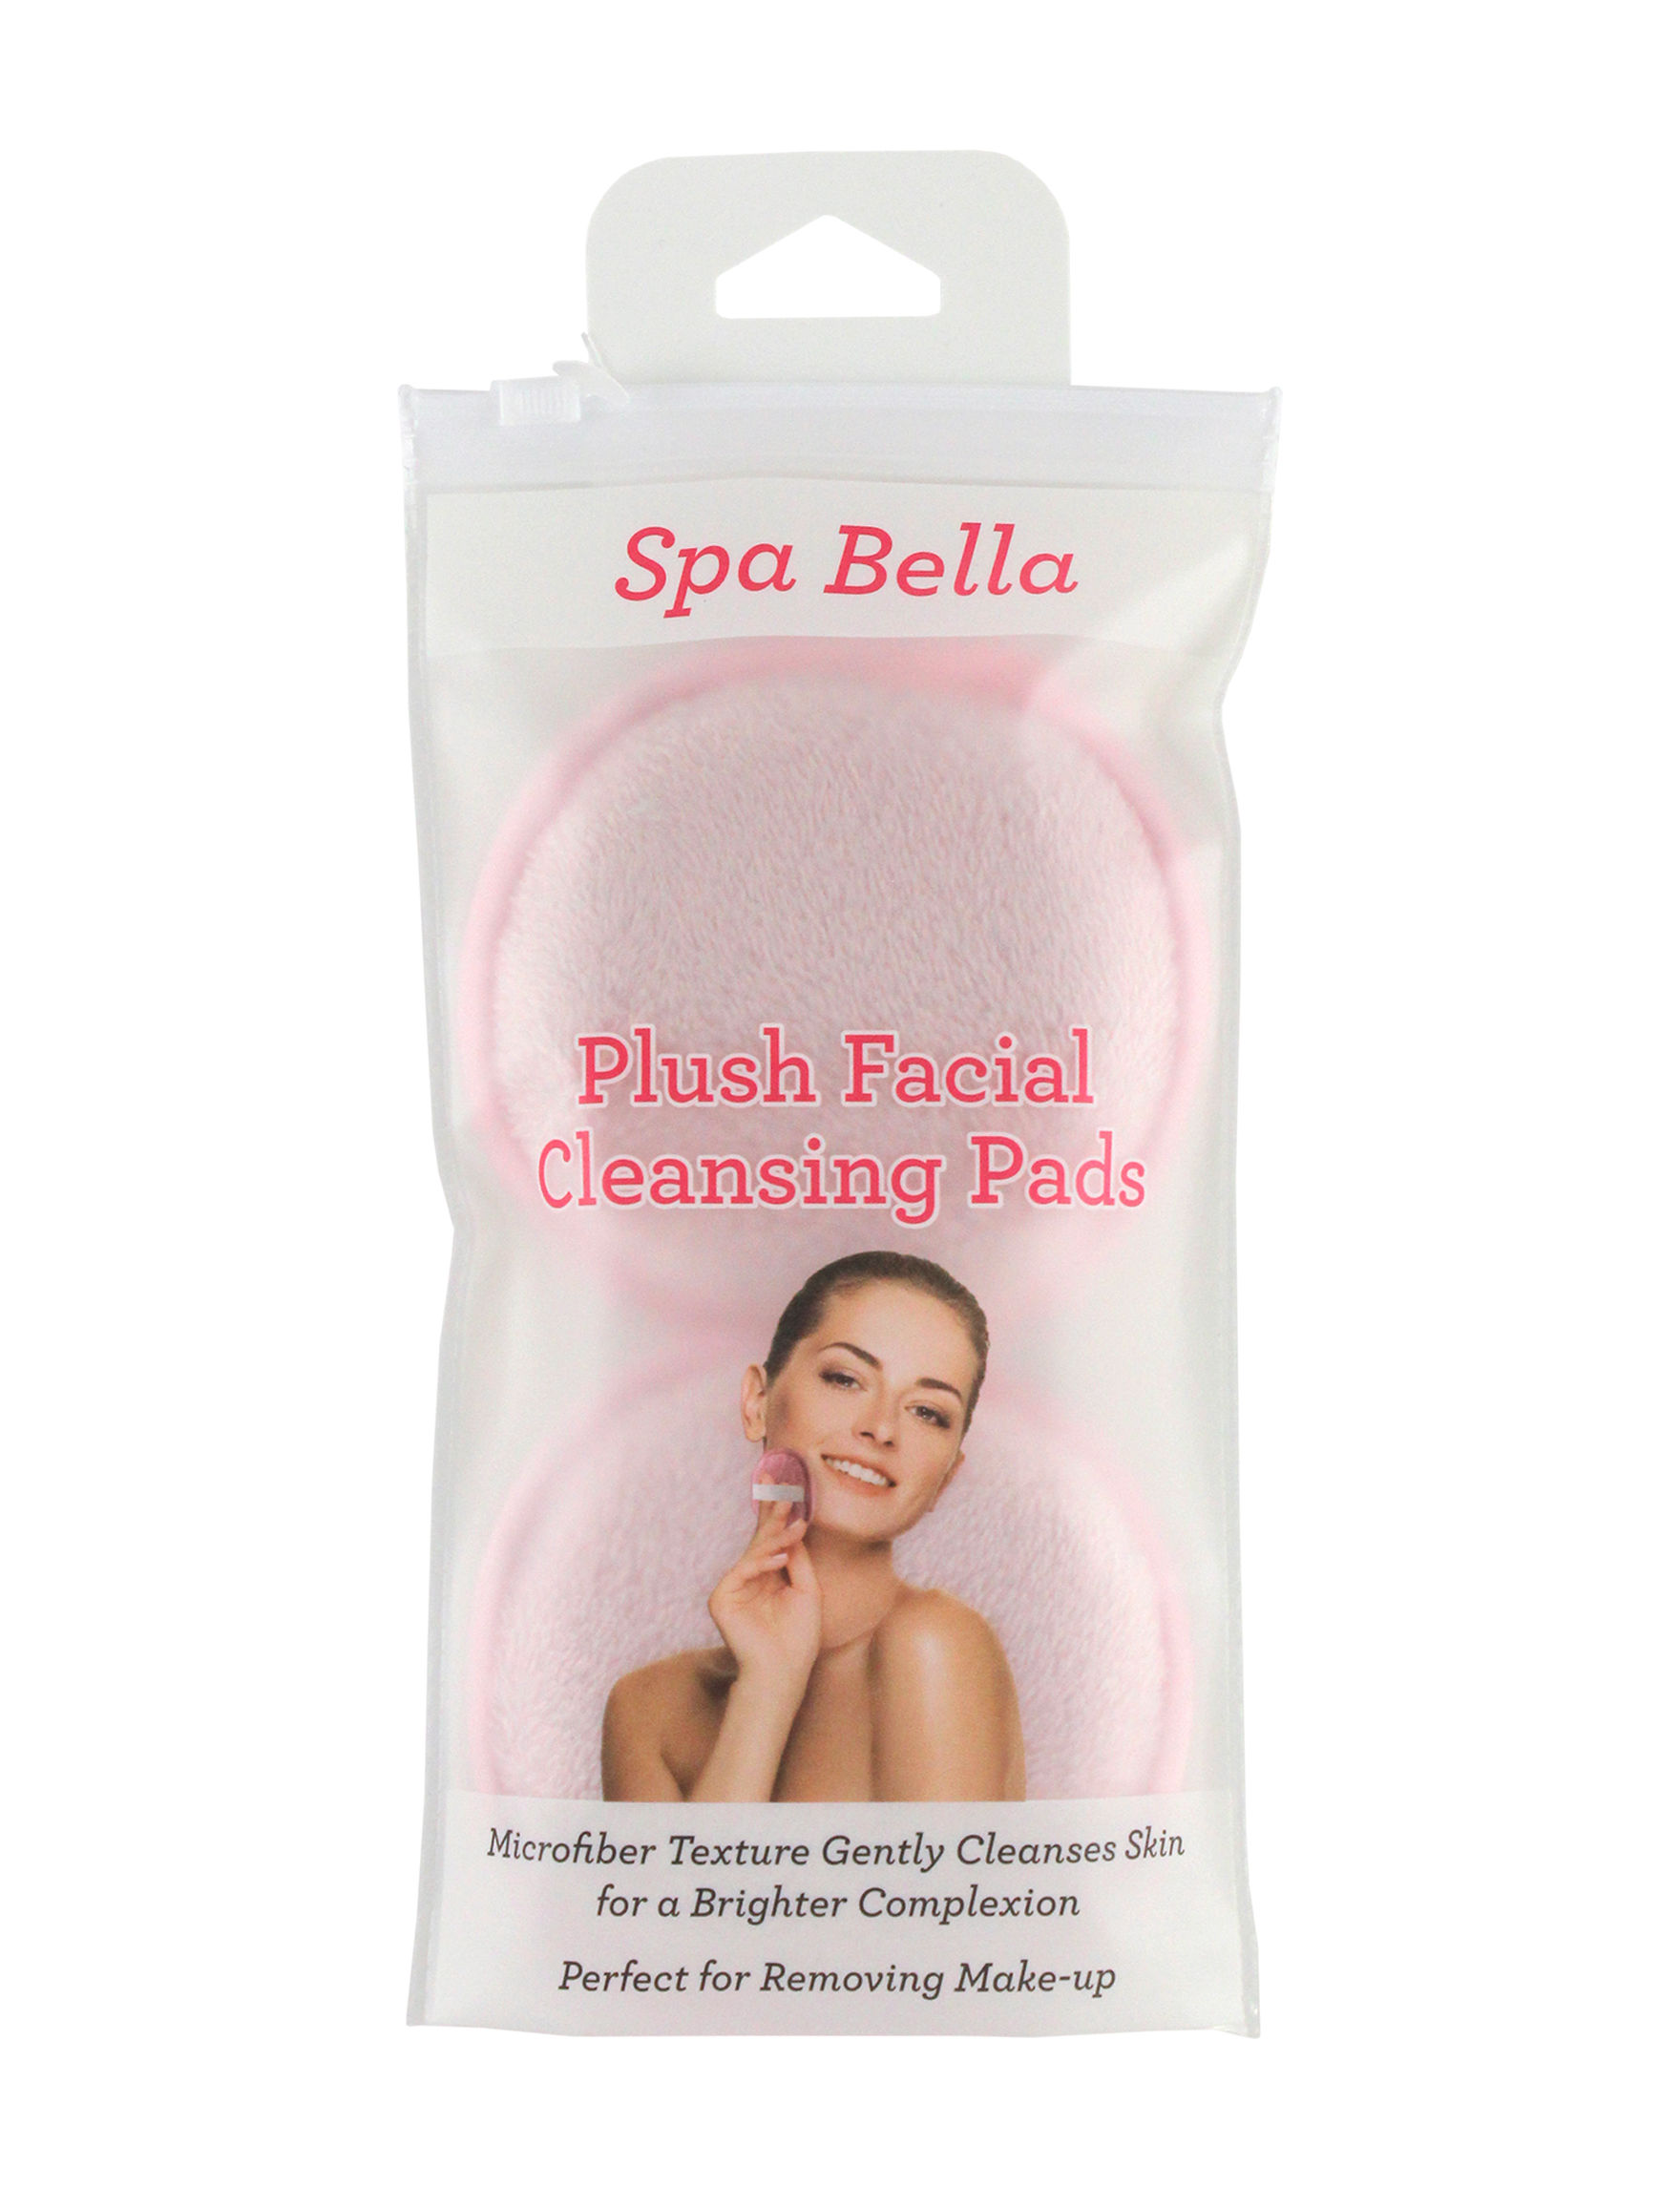 Spa Bella Pink Bath & Body Accessories Face Tools & Brushes